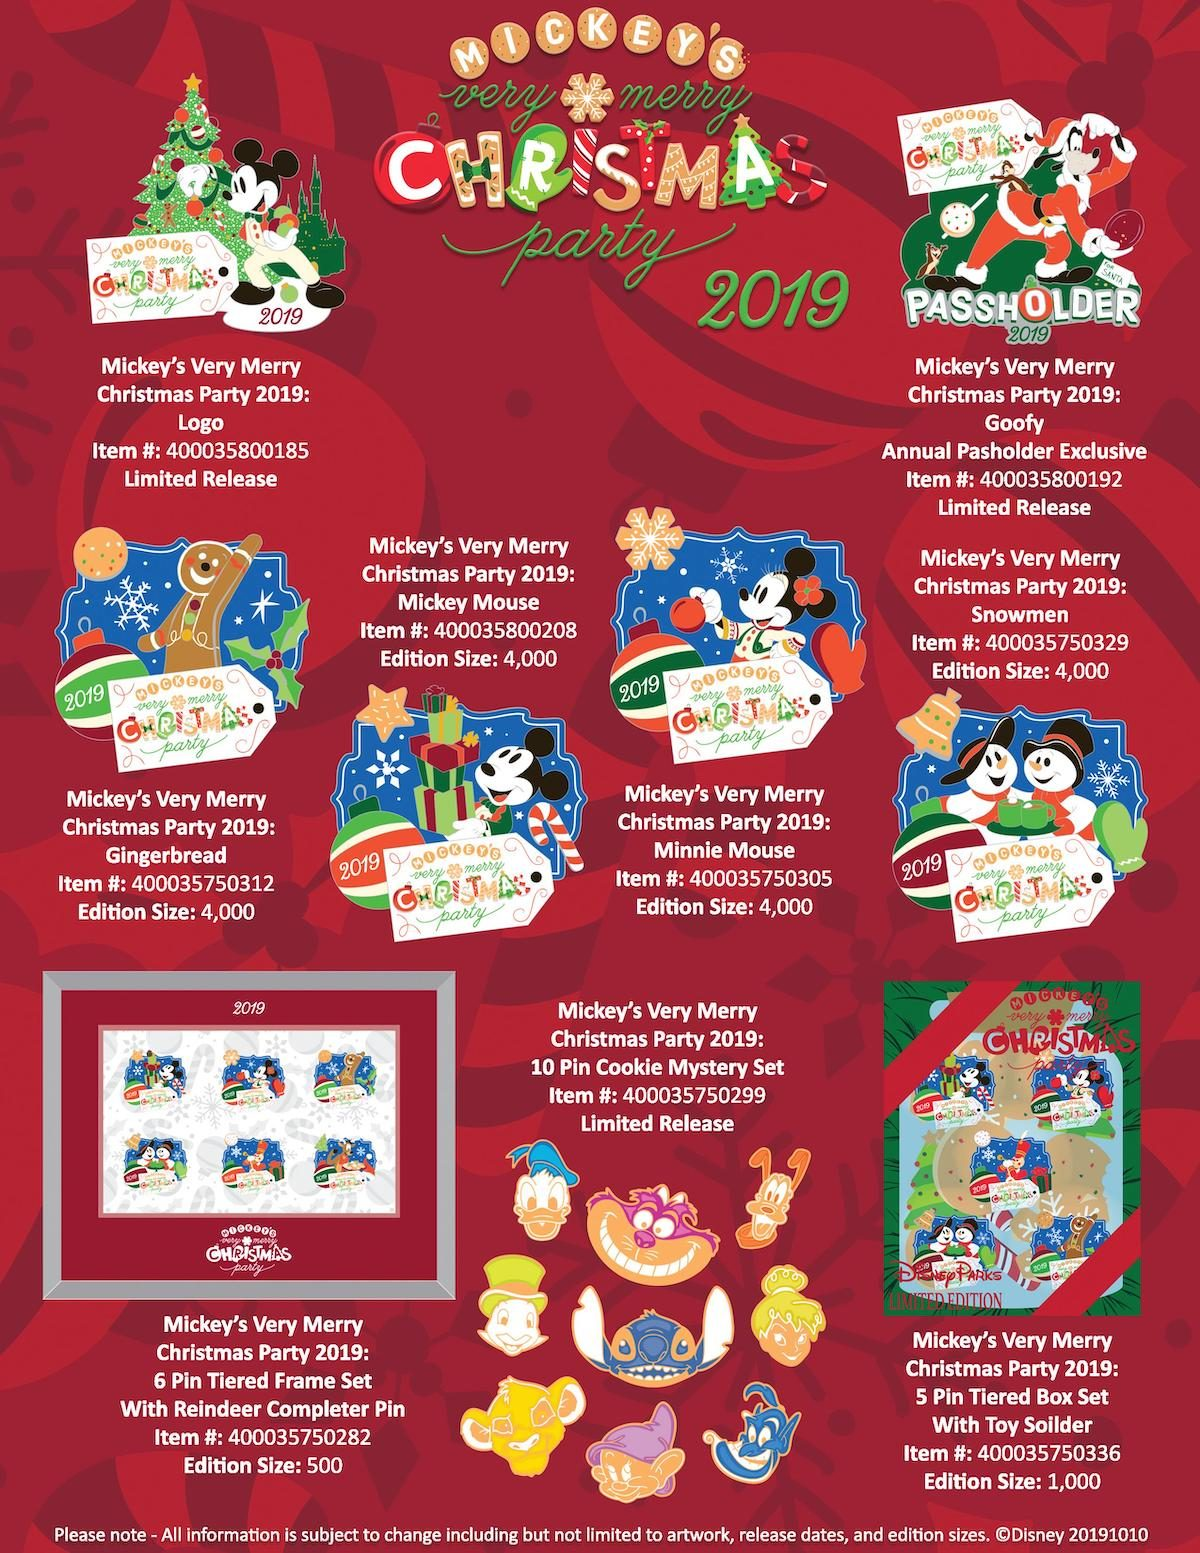 Mickey's Very Merry Christmas Party 2019 Disney Pins